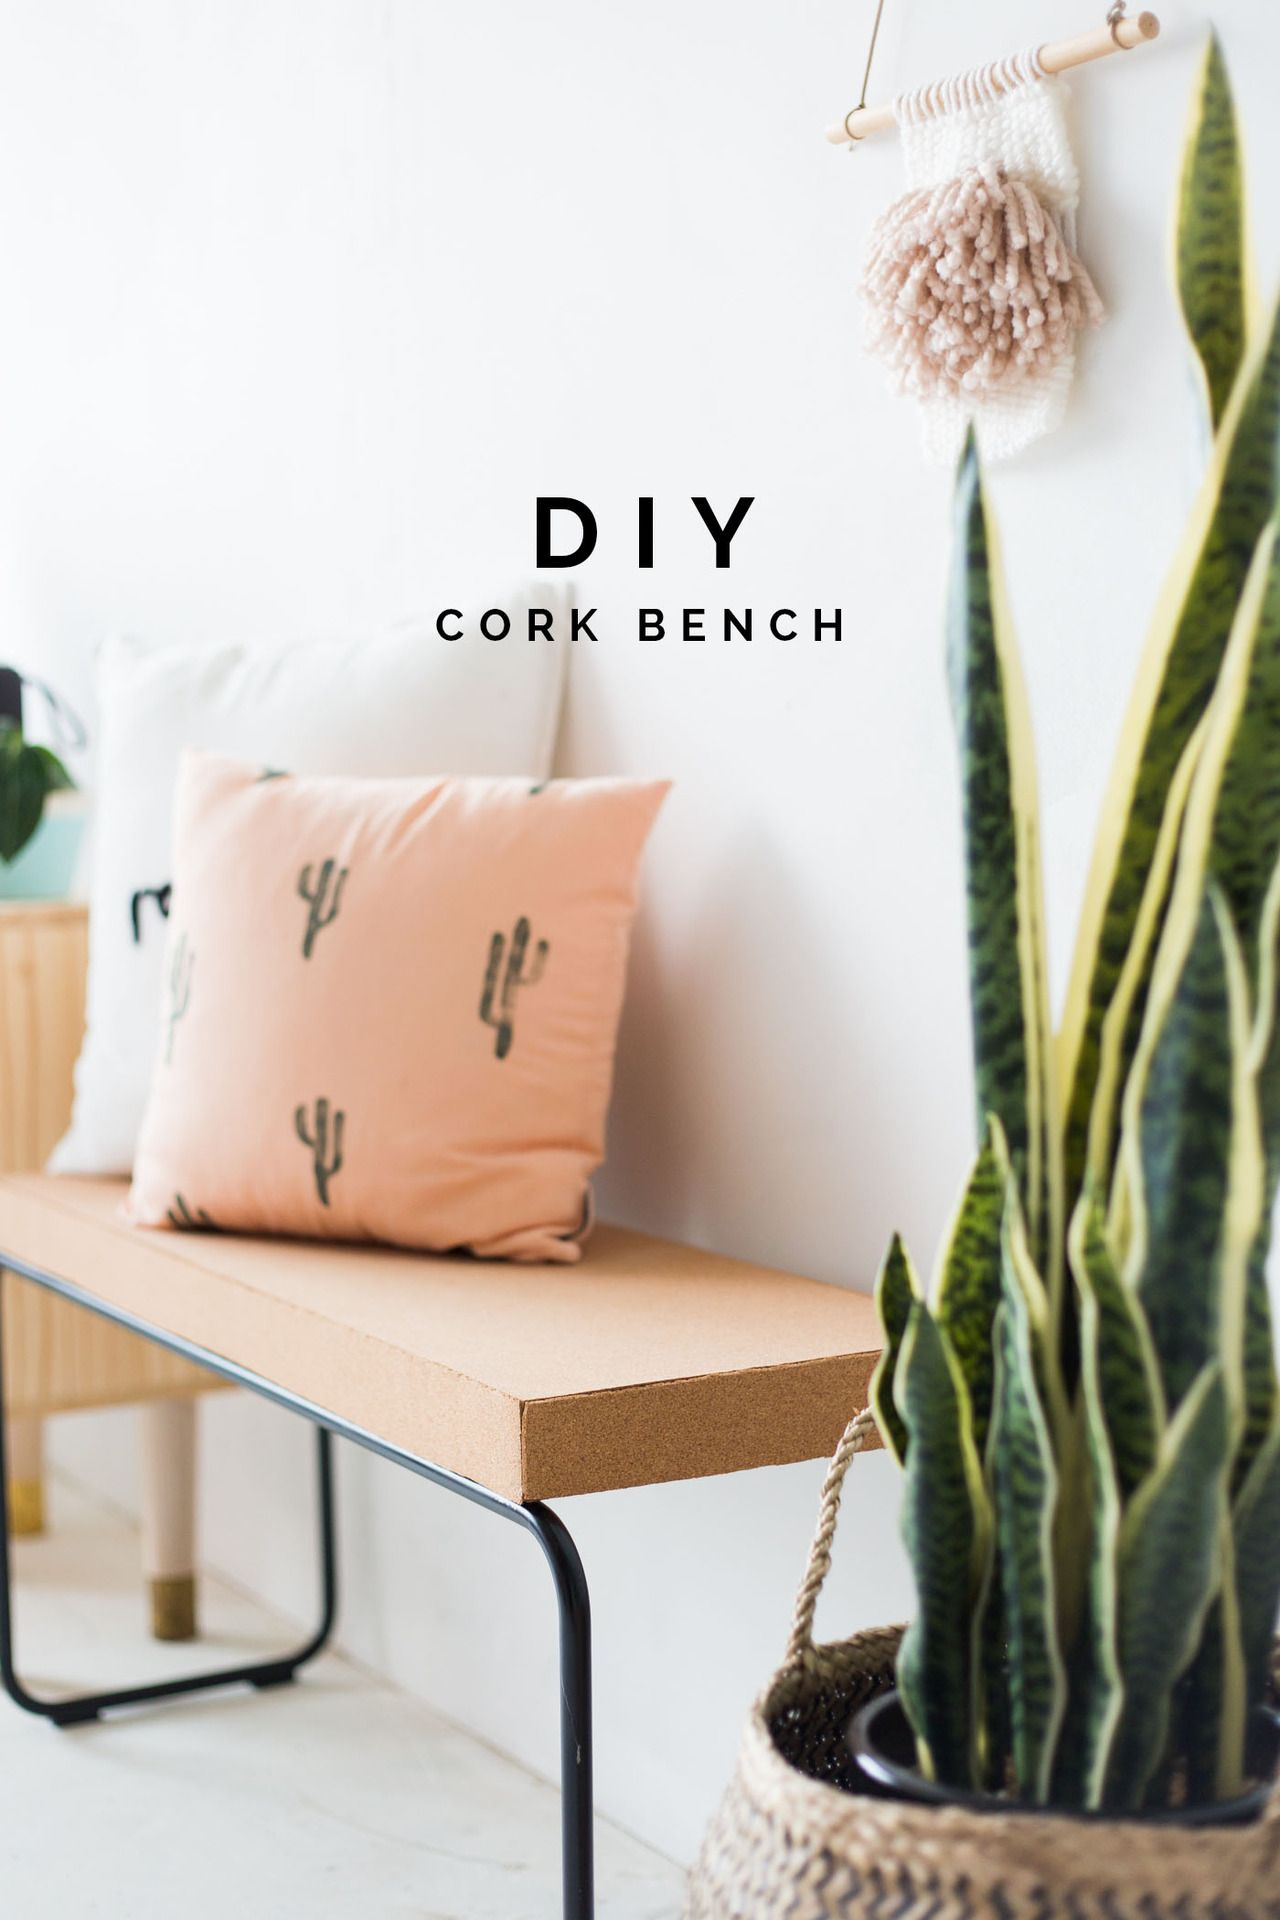 Diy Ideen Möbel Make This Diy Cork Bench And Makeover Your Old Furniture